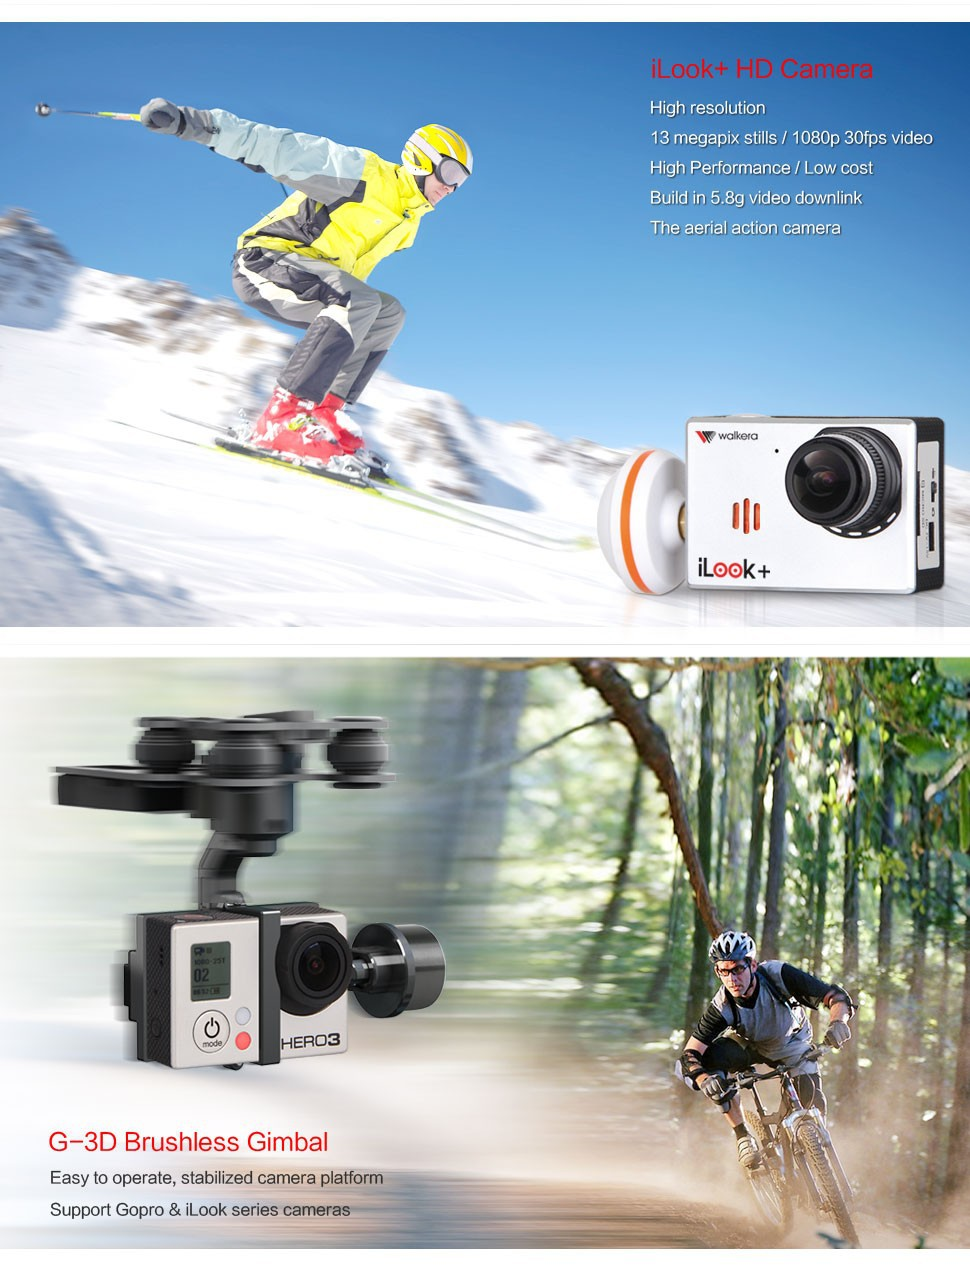 dji phantom 2 vision Walkera TALI H500 Perfect one-stop FPV Drone RTF Hexrcopter with G-3D Gimbal iLook+ Camera IMAX B6 Charger Transmitter